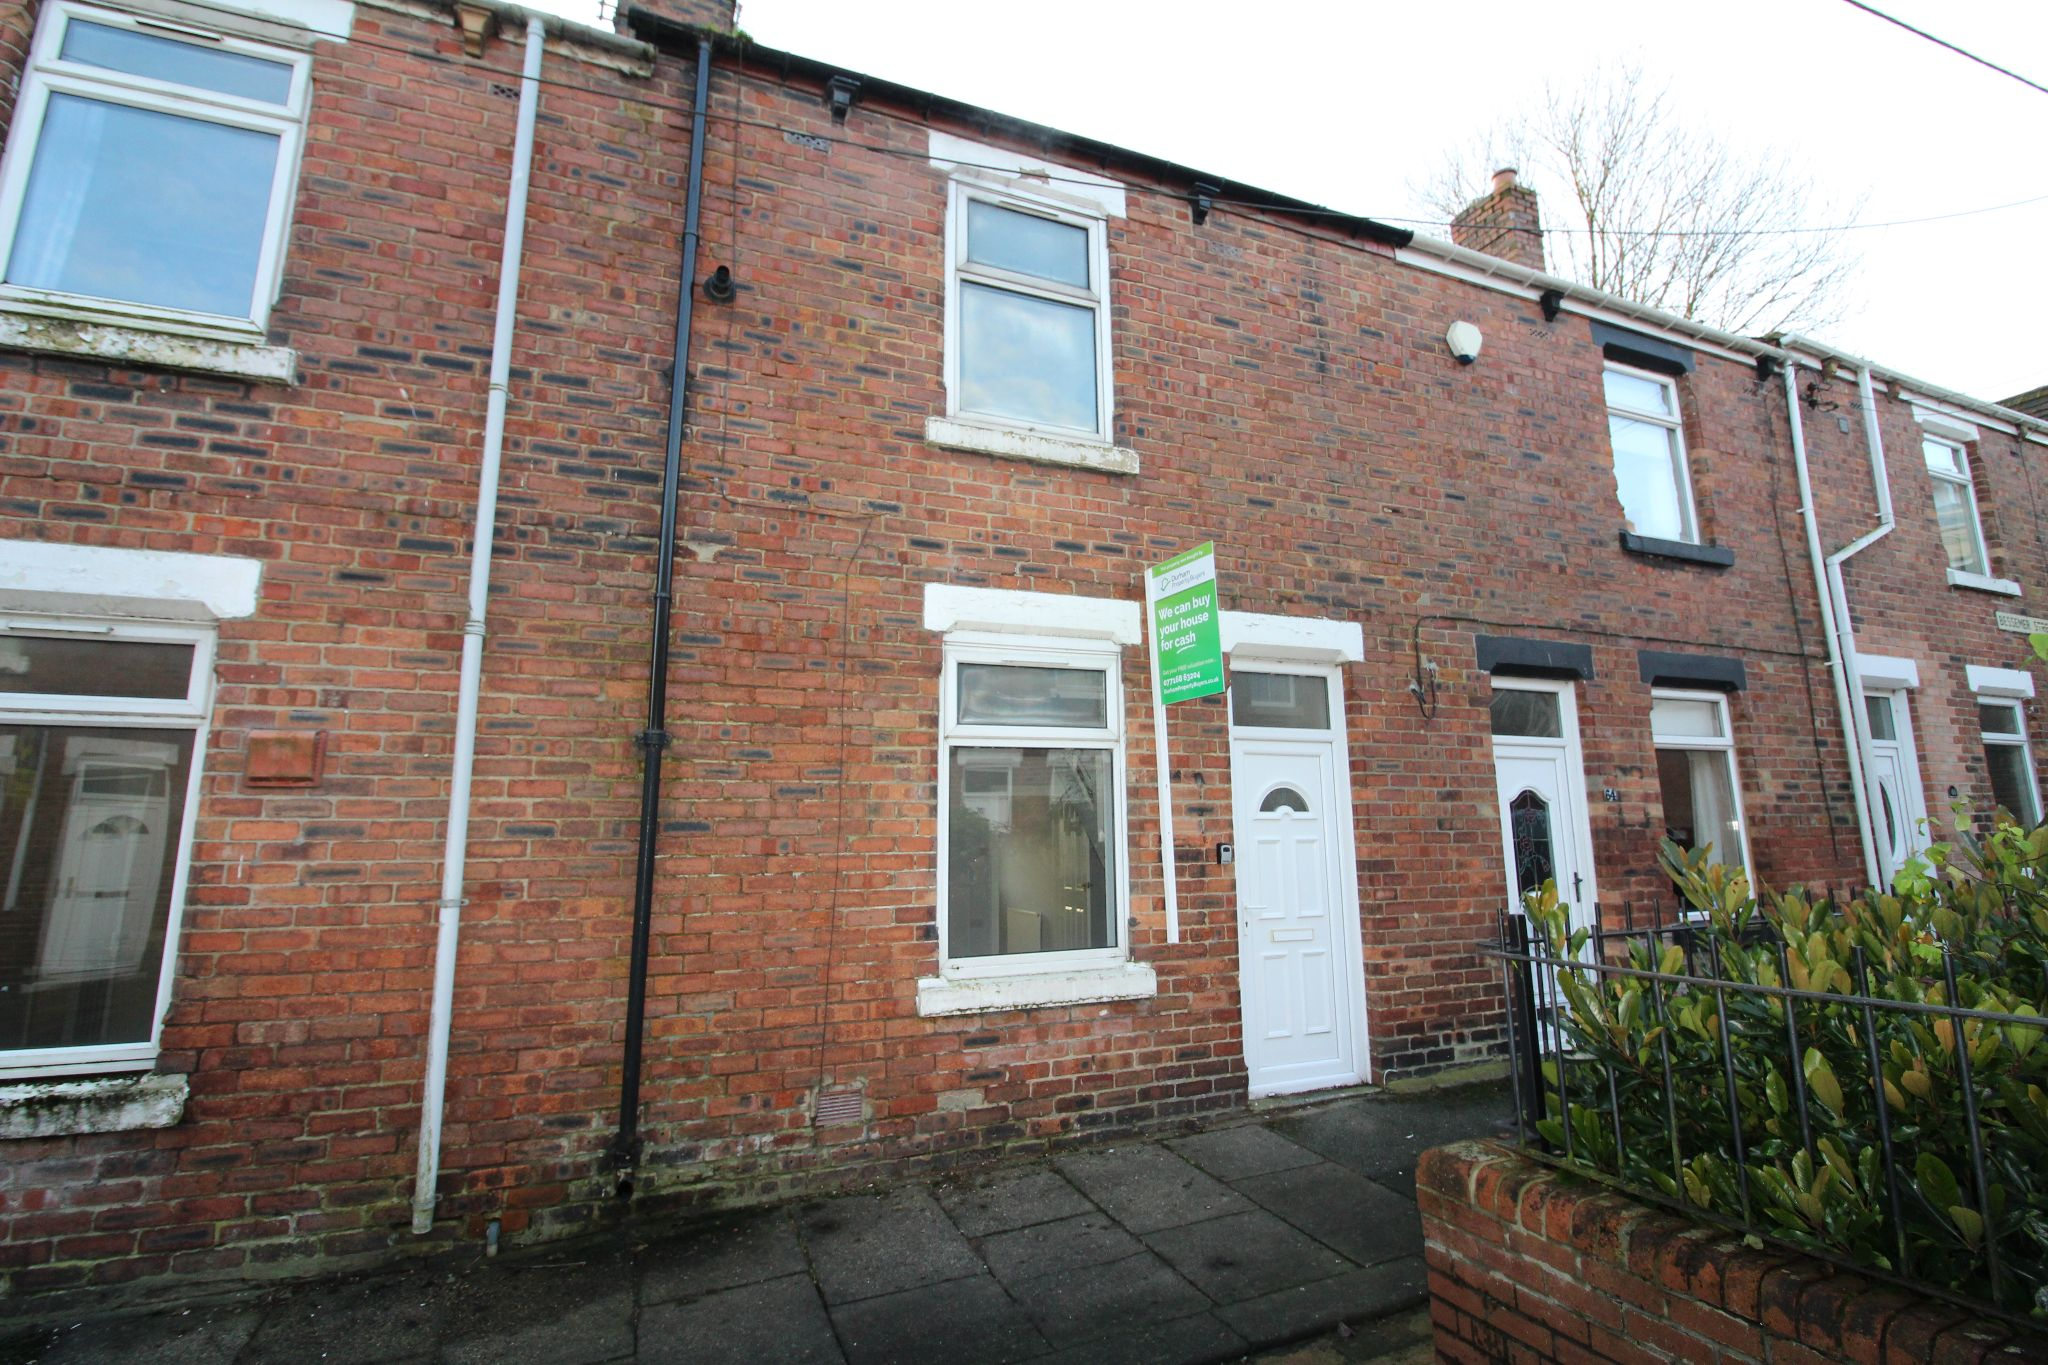 2 bedroom mid terraced house Let in Ferryhill - Photograph 3.